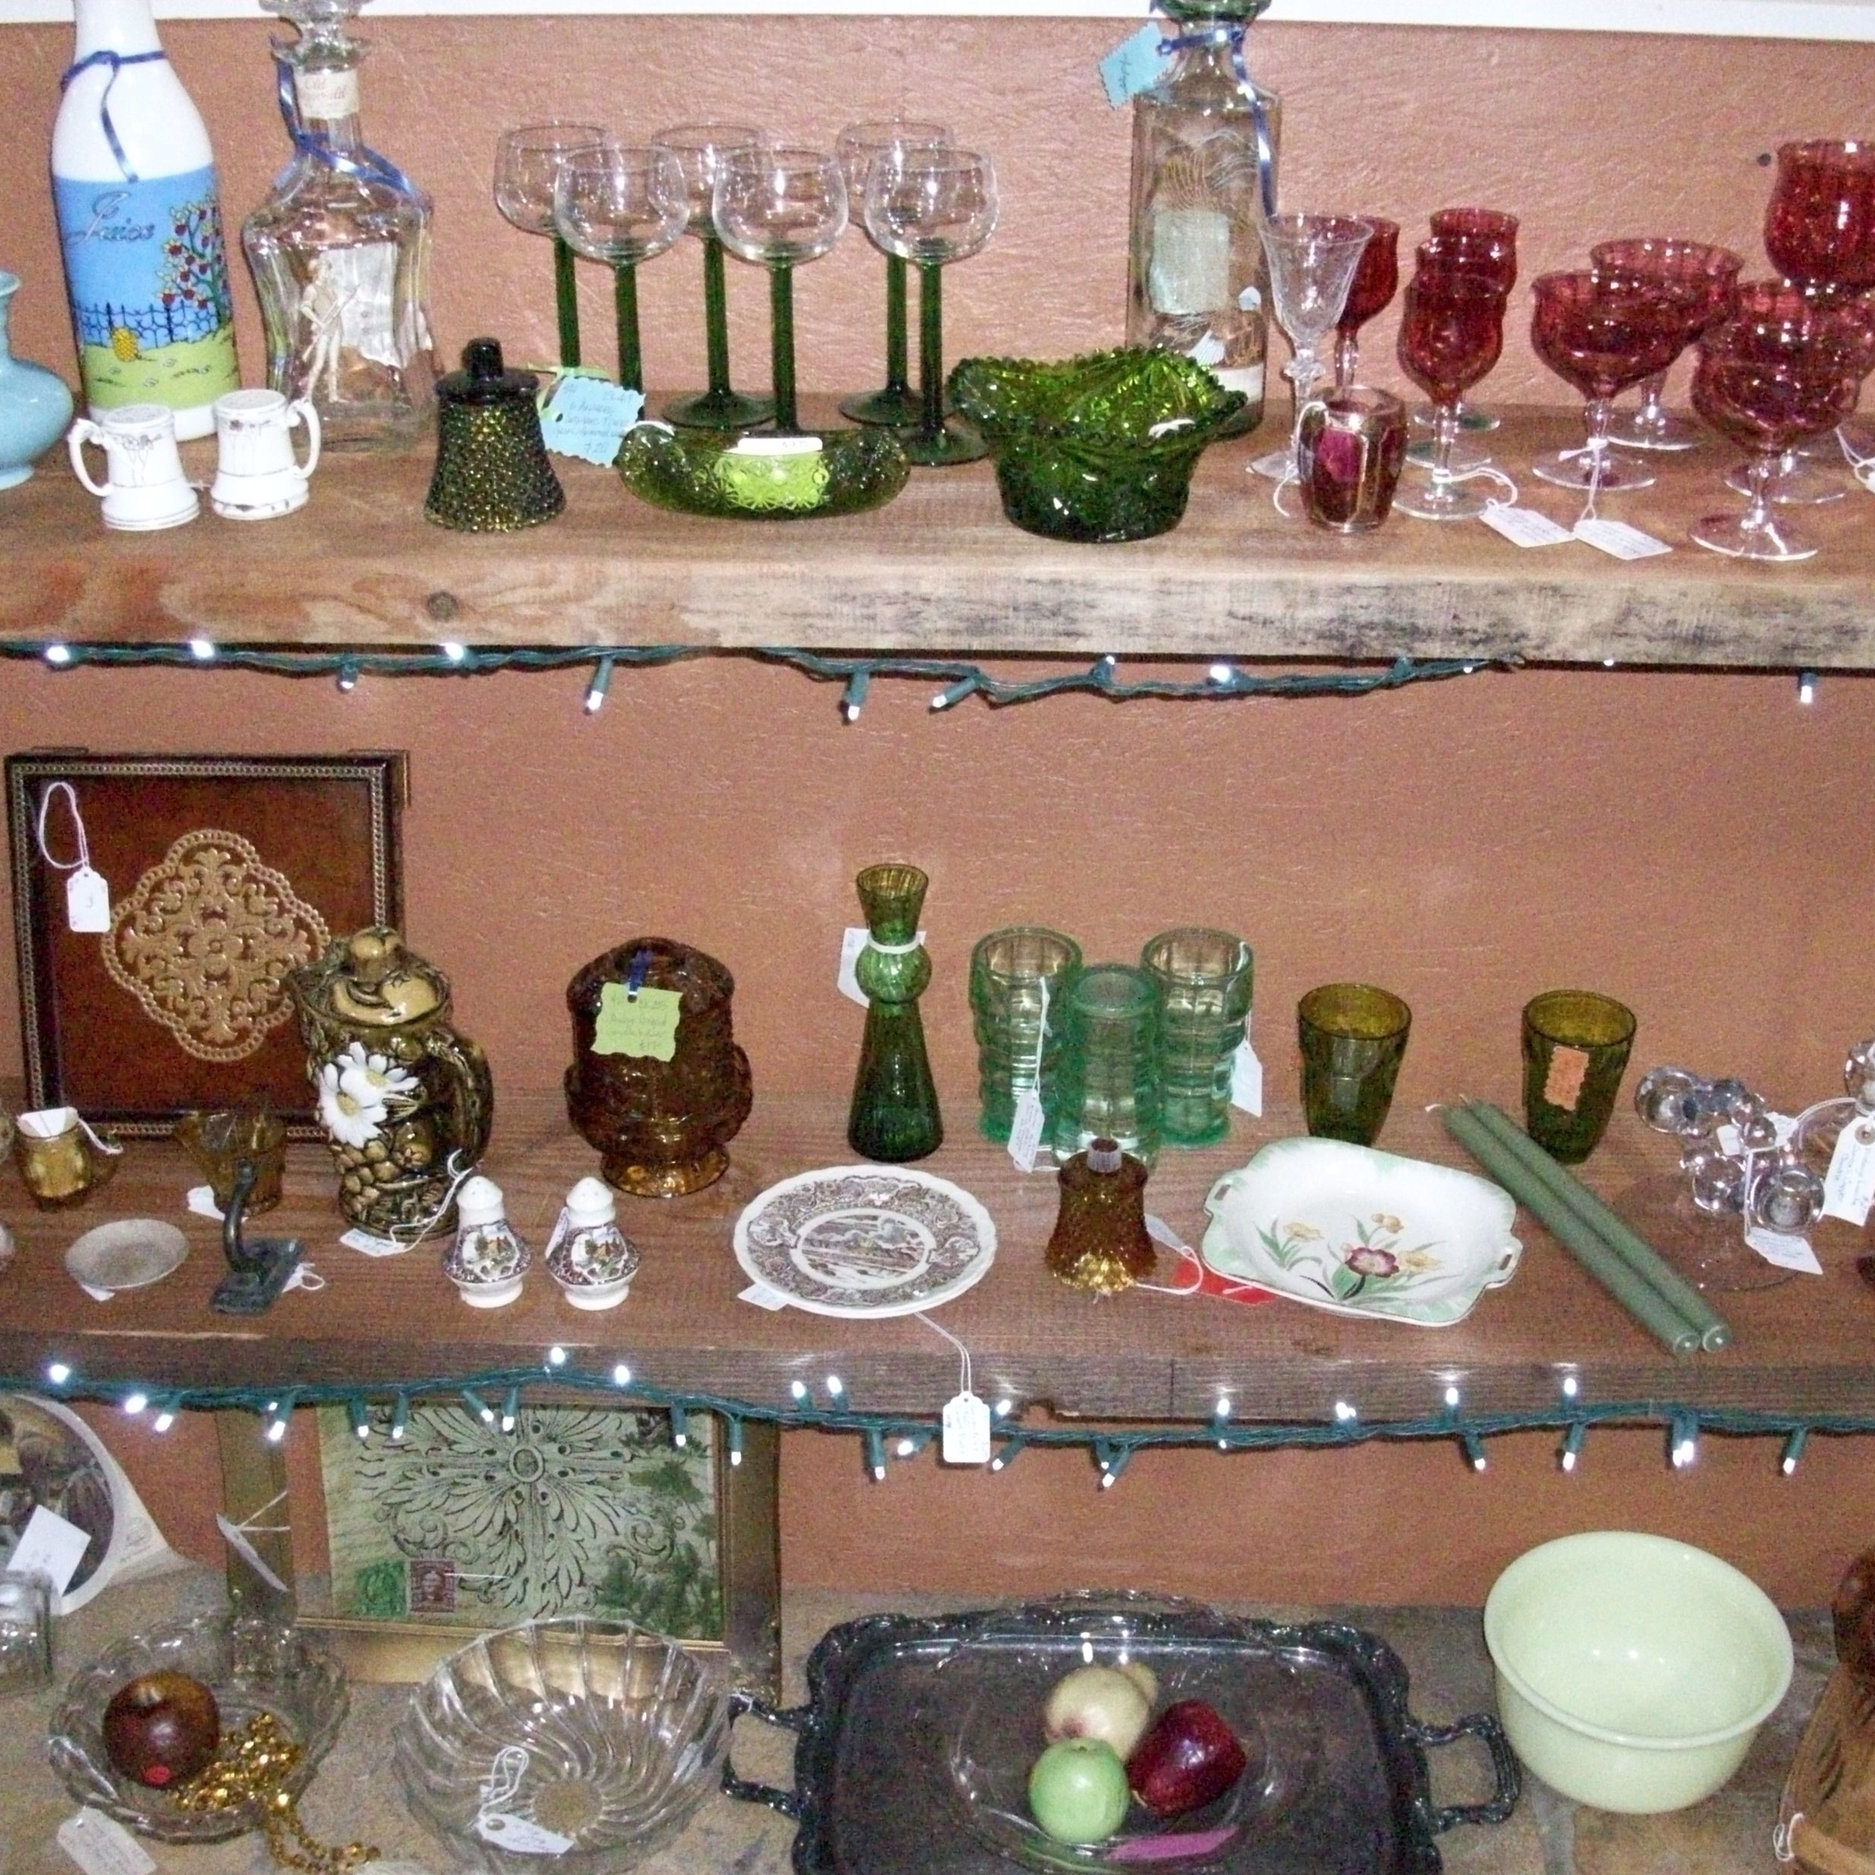 Rogers & Kellner - Vintage glassware and clothing